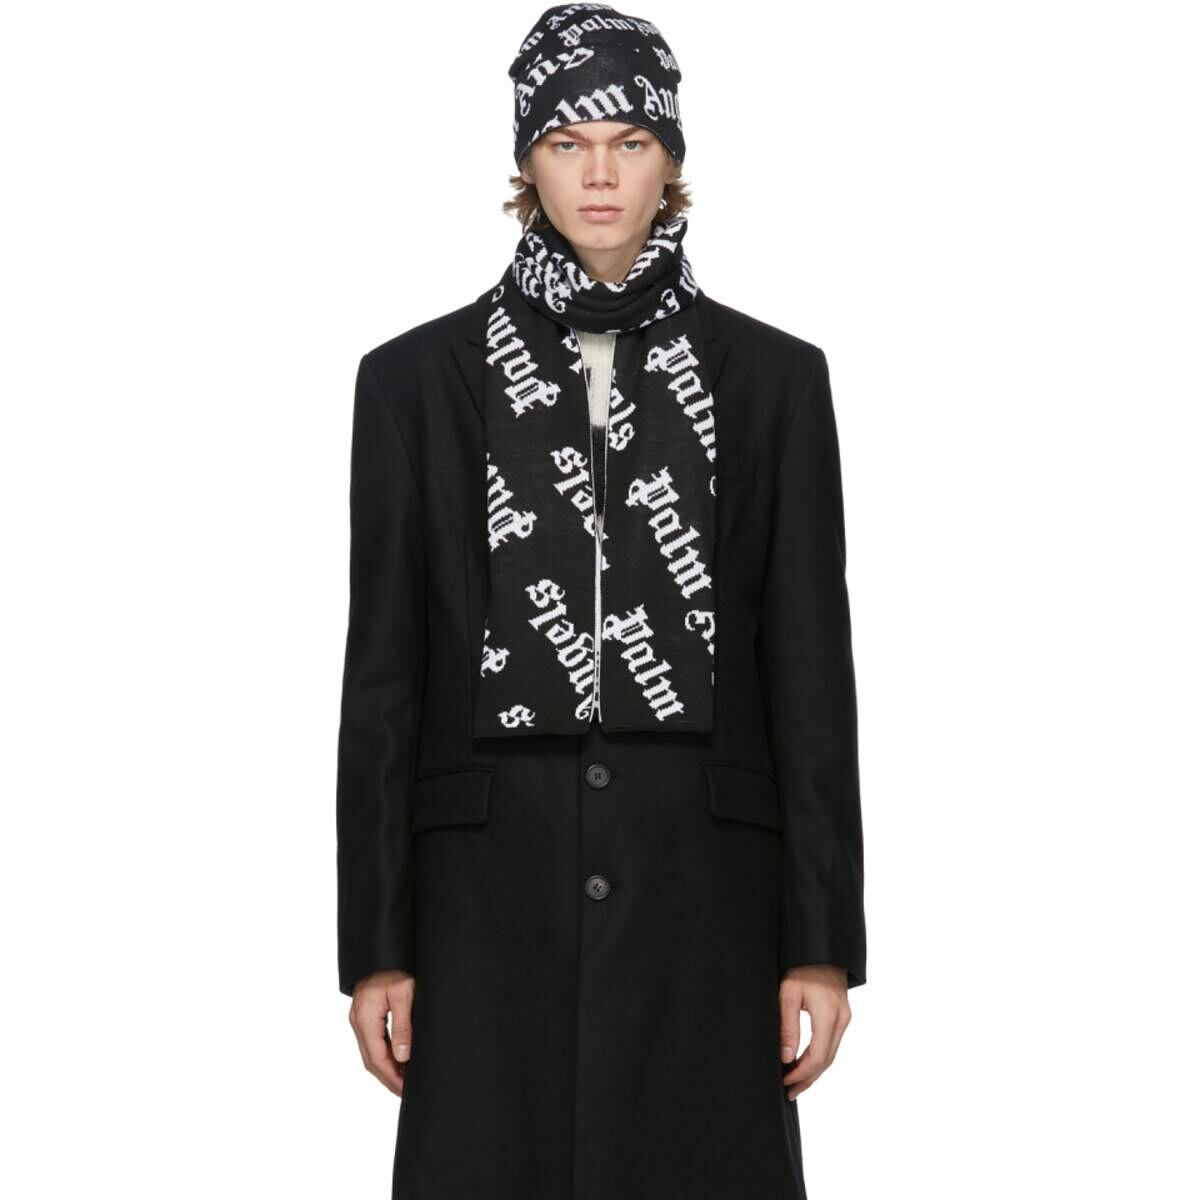 Palm Angels Black and White Logo Beanie and Scarf Set Ssense USA MEN Men ACCESSORIES Mens HATS